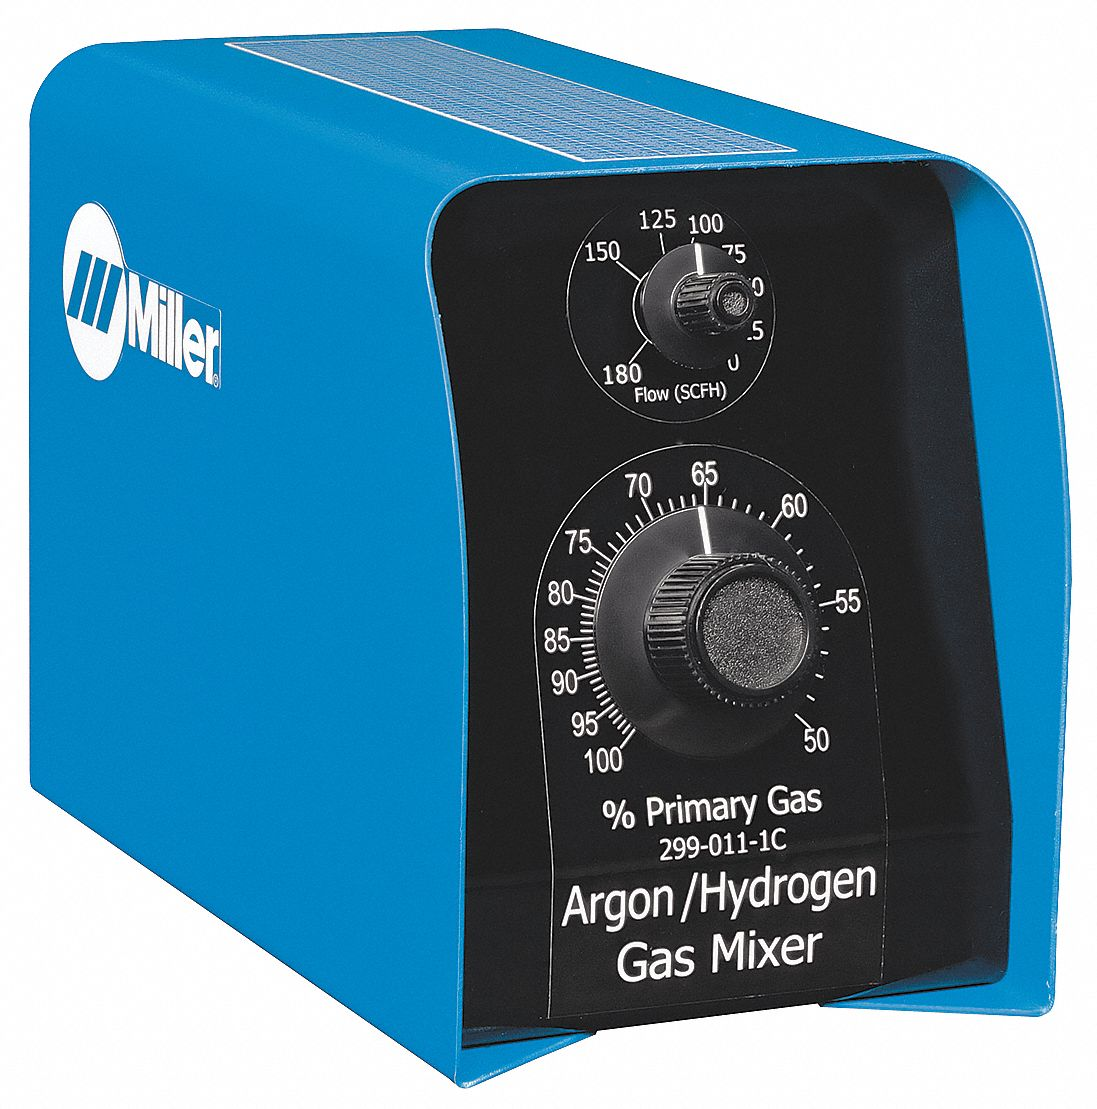 MILLER ELECTRIC Two Gas Mixer for Argon and Hydrogen with 10 to 180 ...